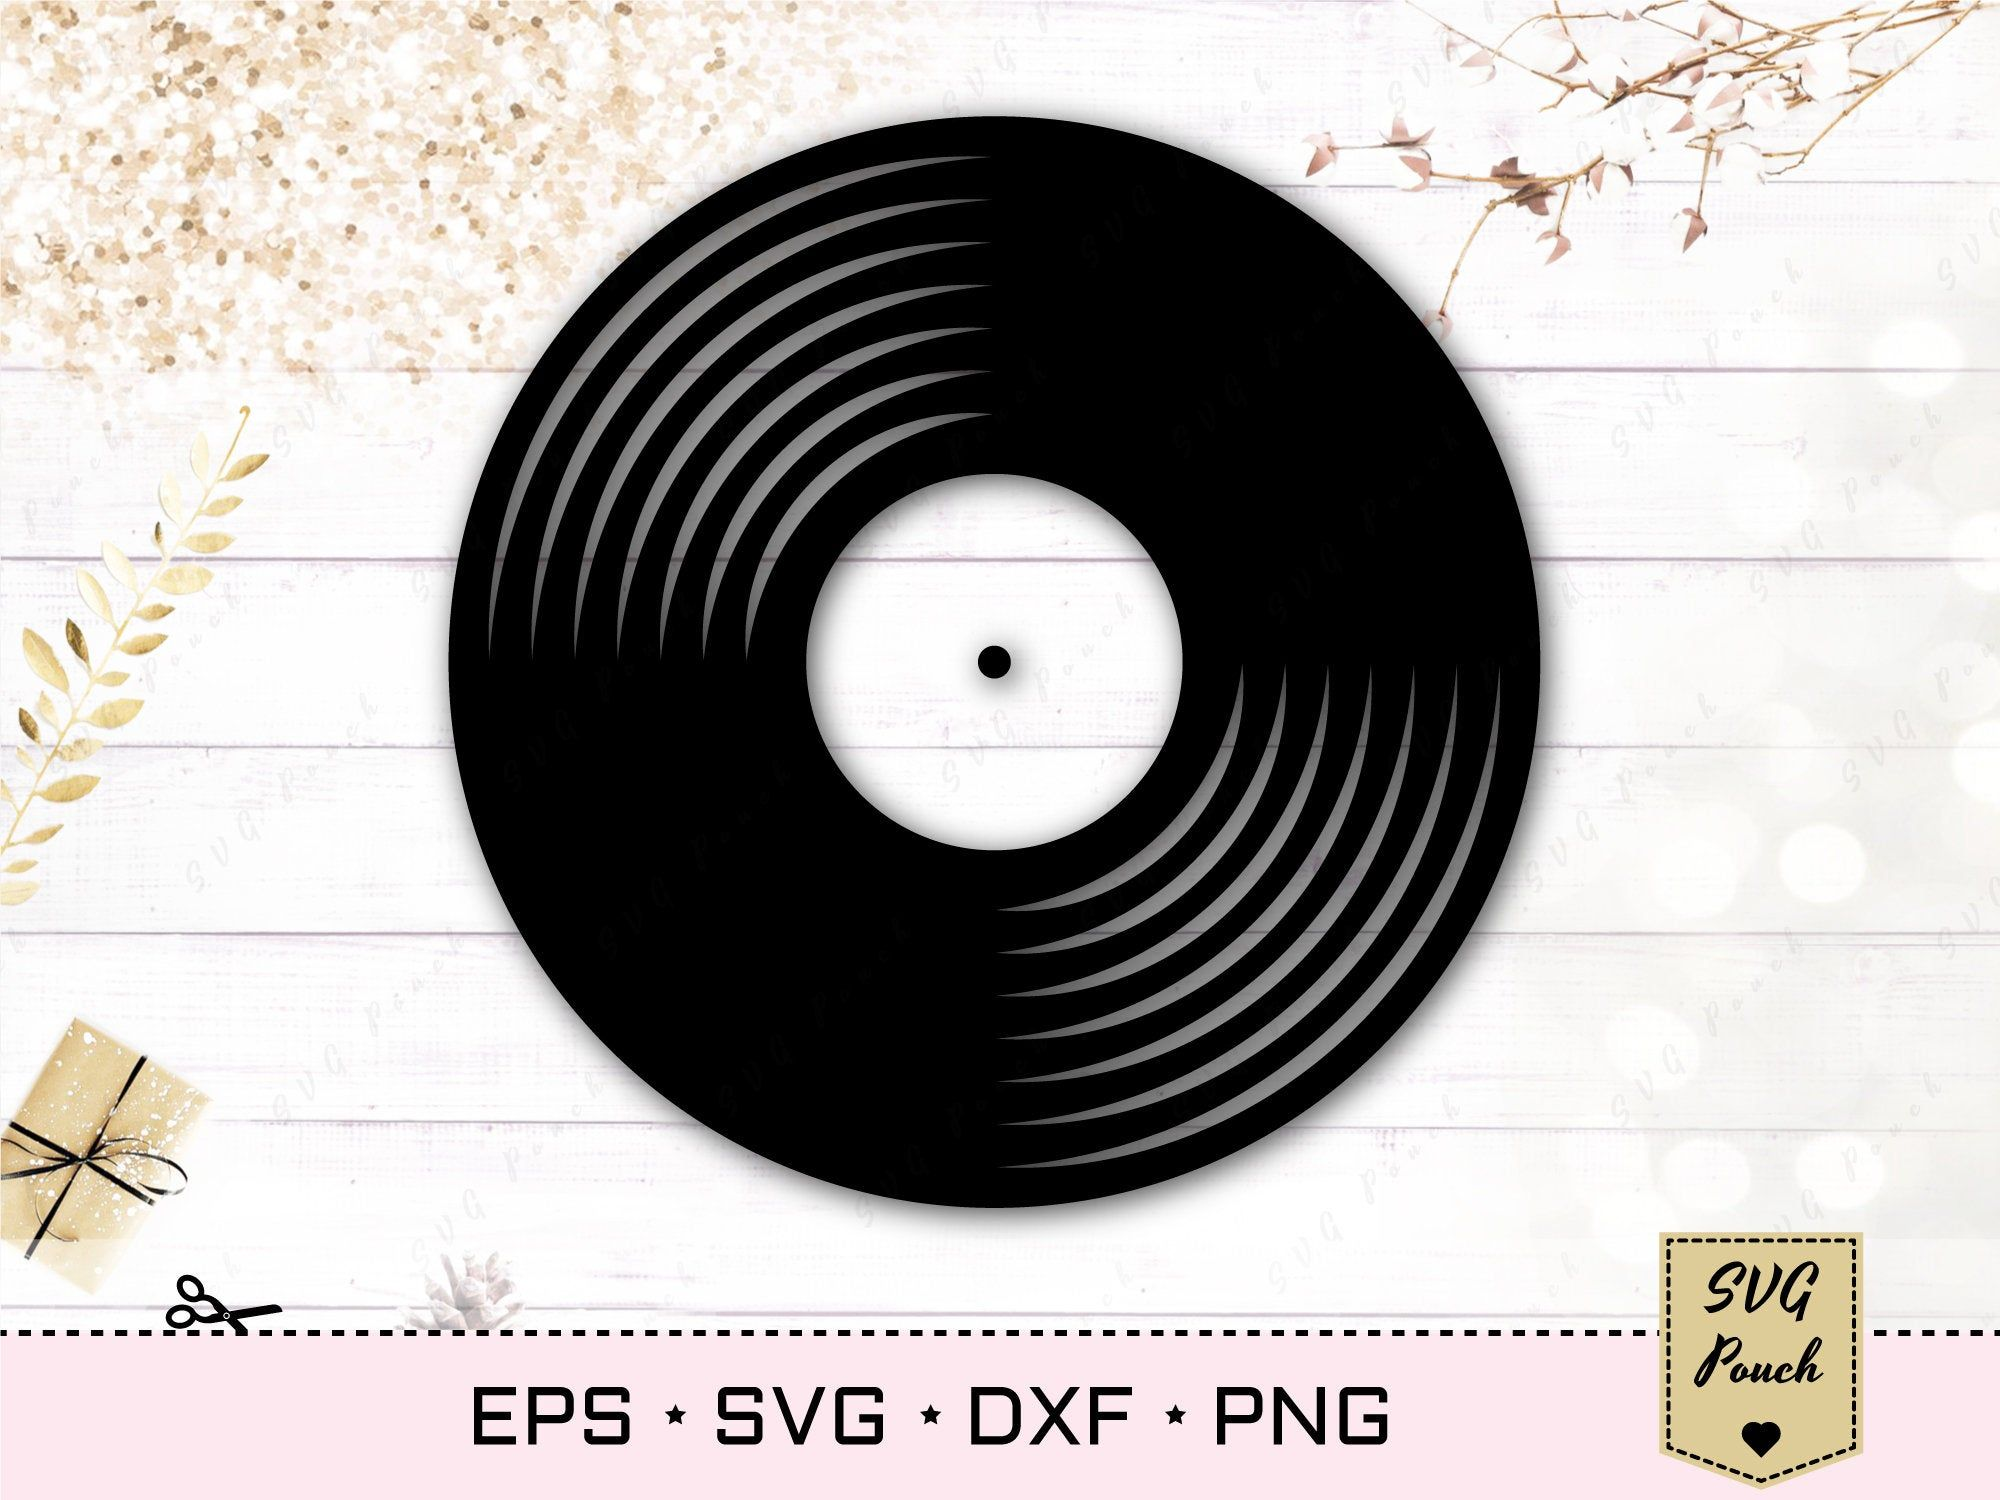 Vinyl Record Svg Digital File Vinyl Record Vector Eps File Vinyl Record Cricut And Silhouette Svg Vinyl Record Printable Clipart Png In 2020 Vinyl Records Vinyl Stencil Decor